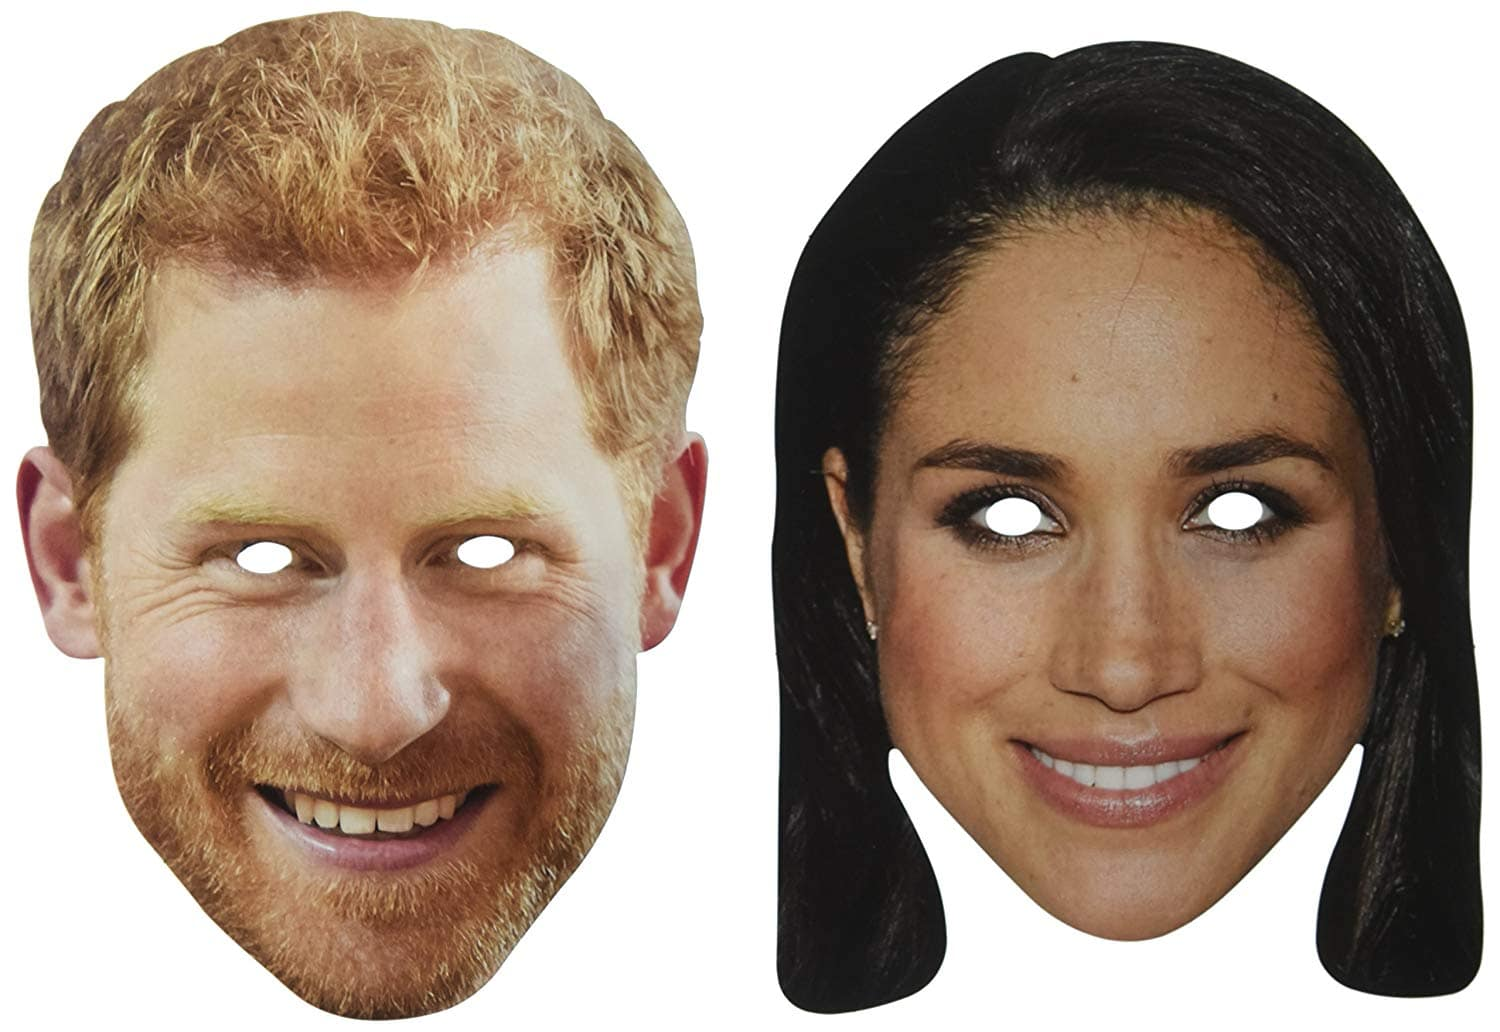 Couples costume ideas 2018 Prince Harry and Meghan Markle